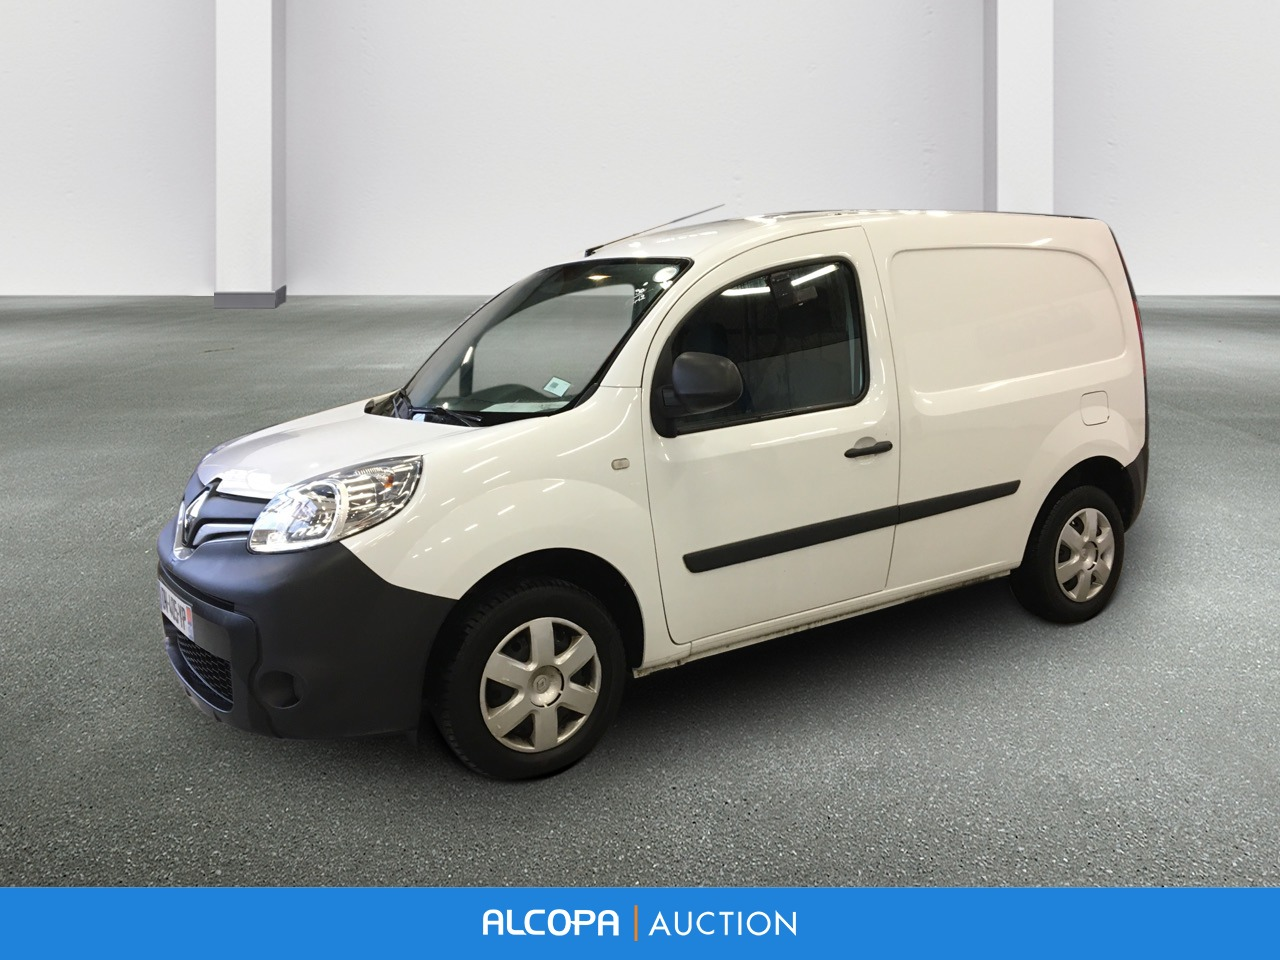 renault kangoo express kangoo express l1 1 5 dci 75 grand confort alcopa auction. Black Bedroom Furniture Sets. Home Design Ideas